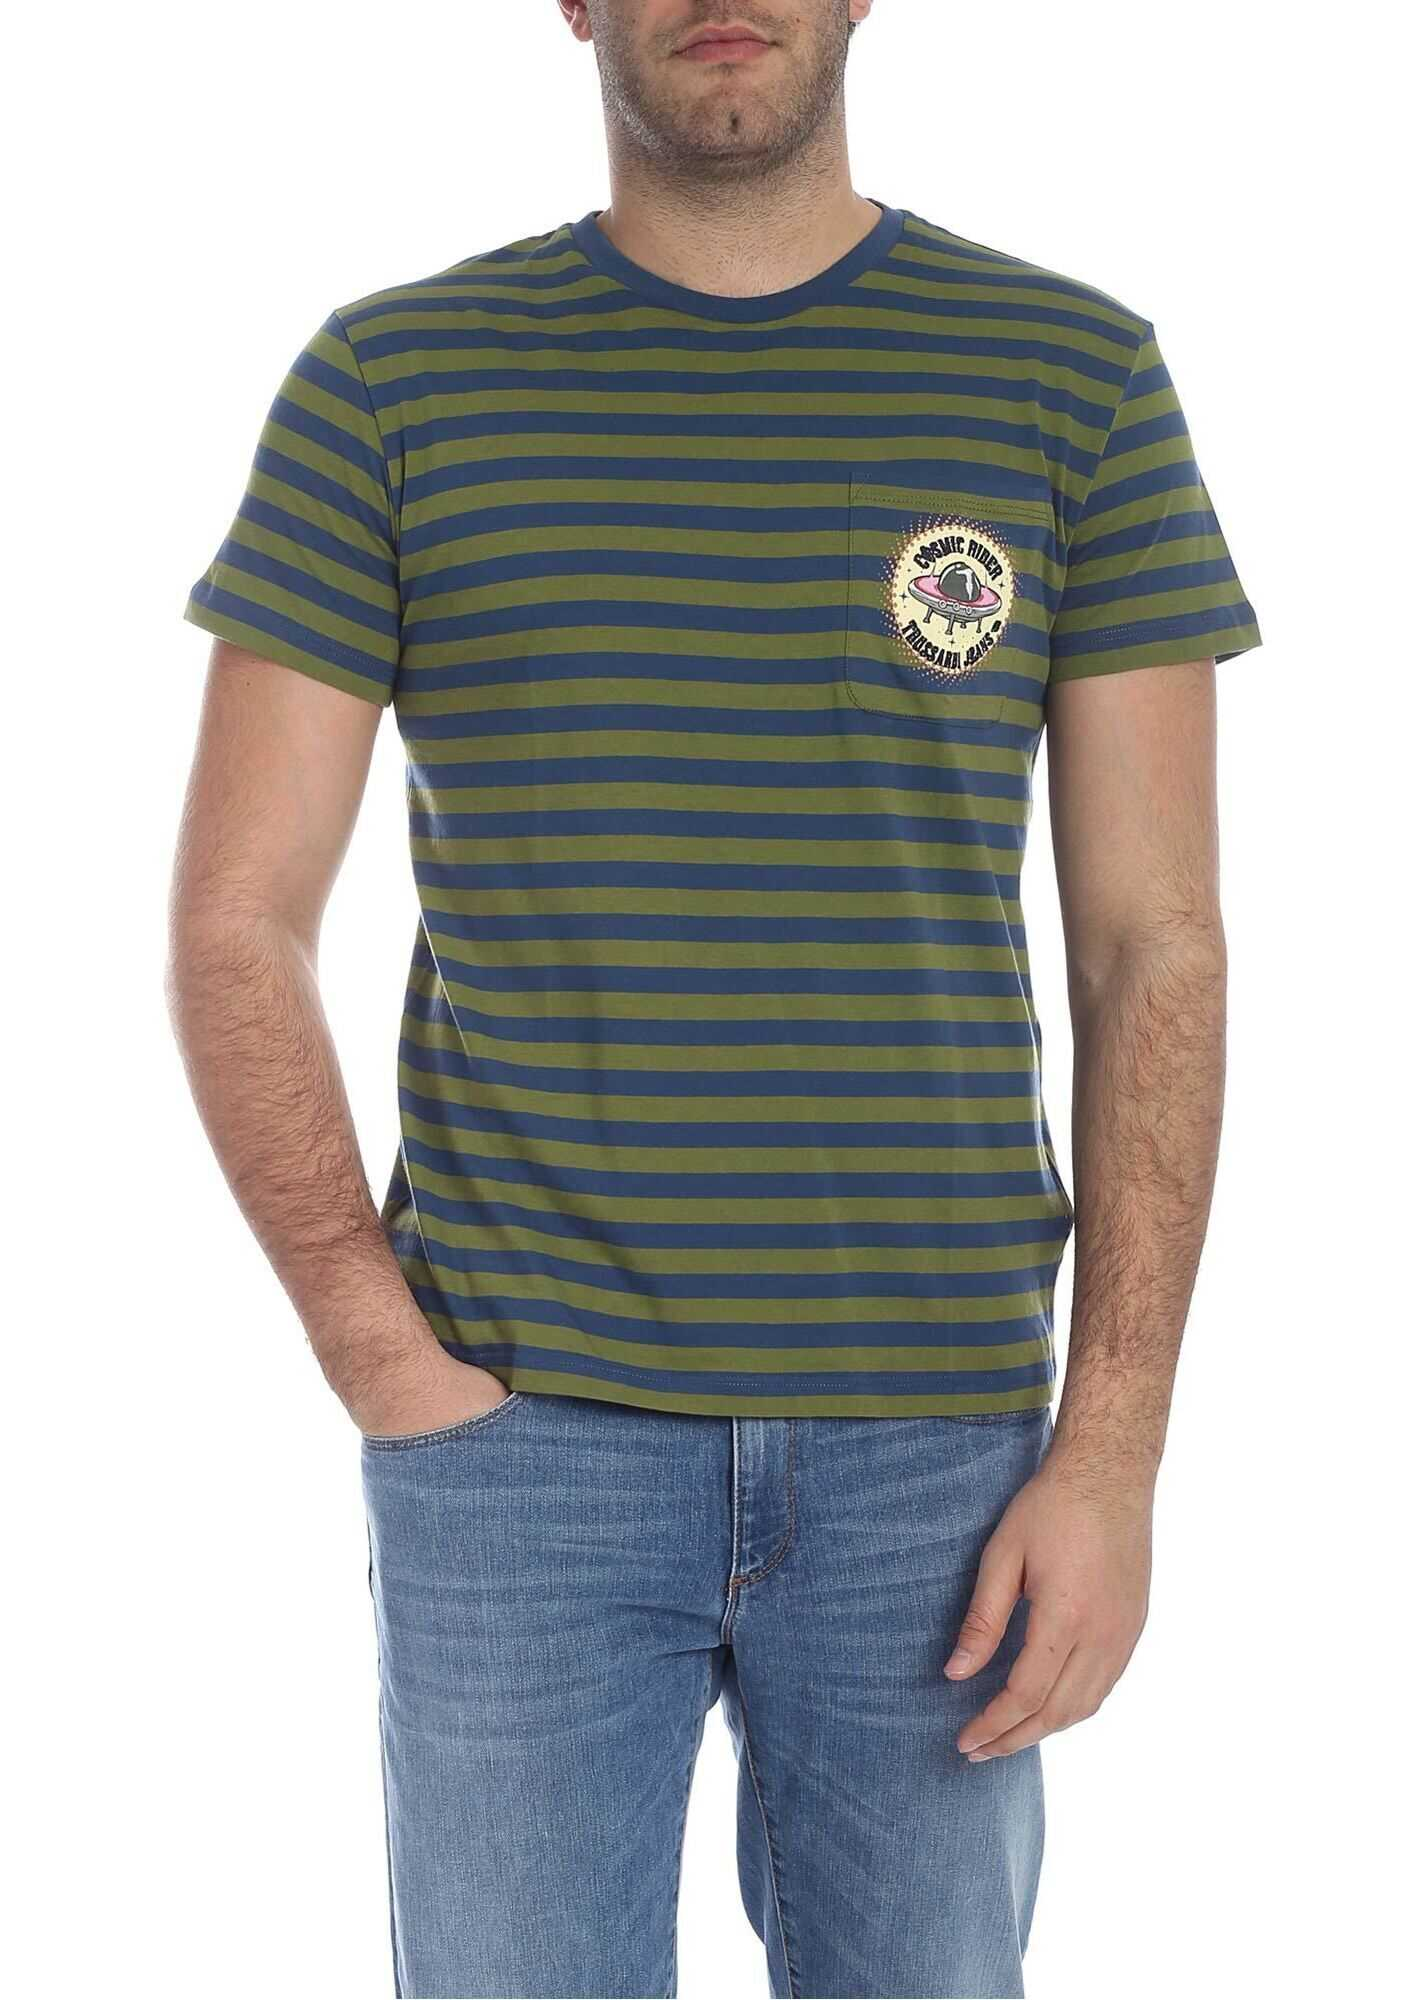 Striped T-Shirt In Green And Blue